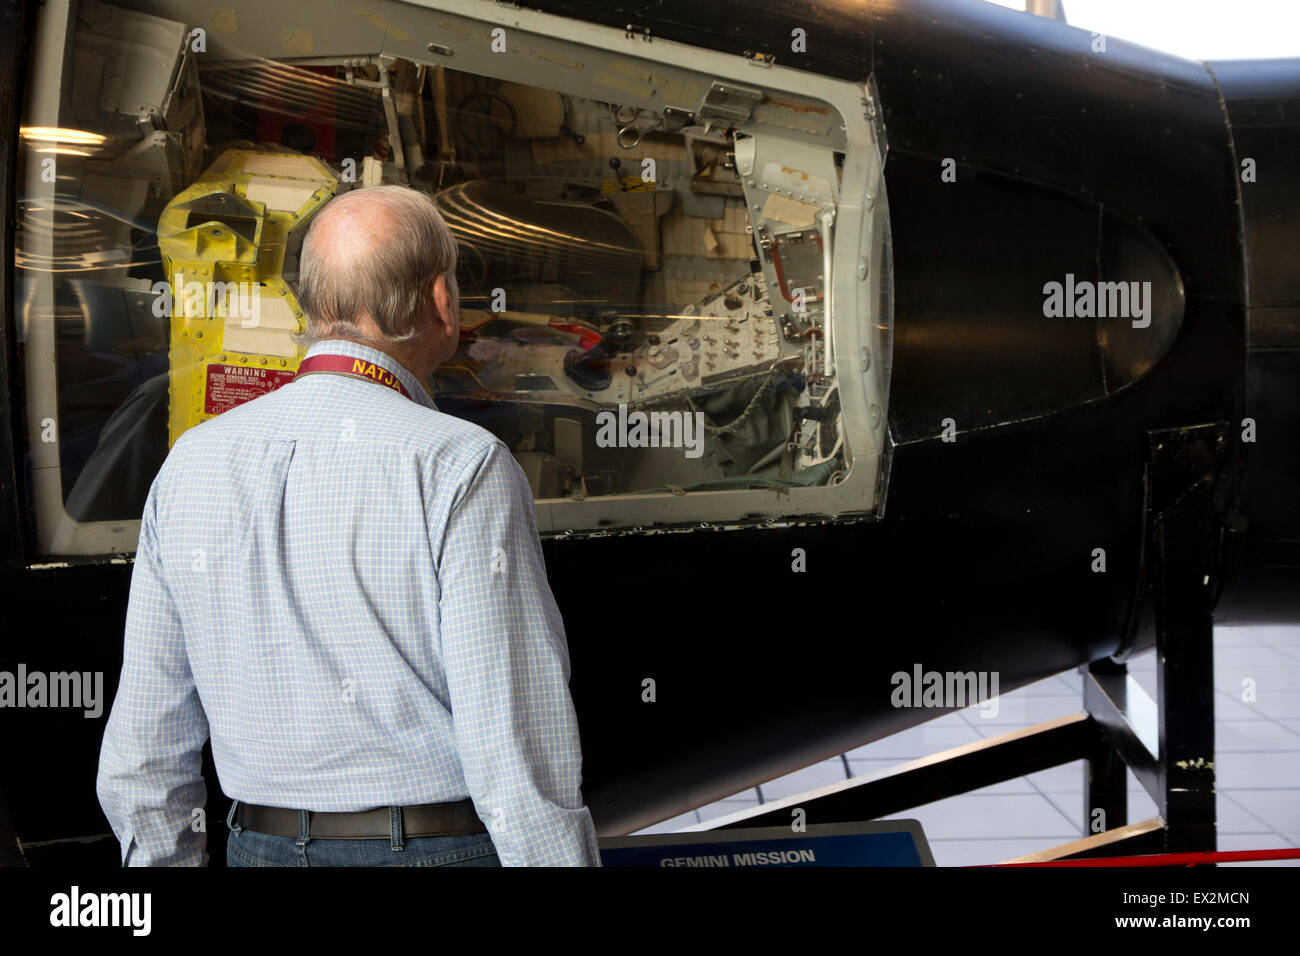 Visitor views a Gemini space capsule at Davidson Center for Space Exploration, Huntsville, AL - Stock Image